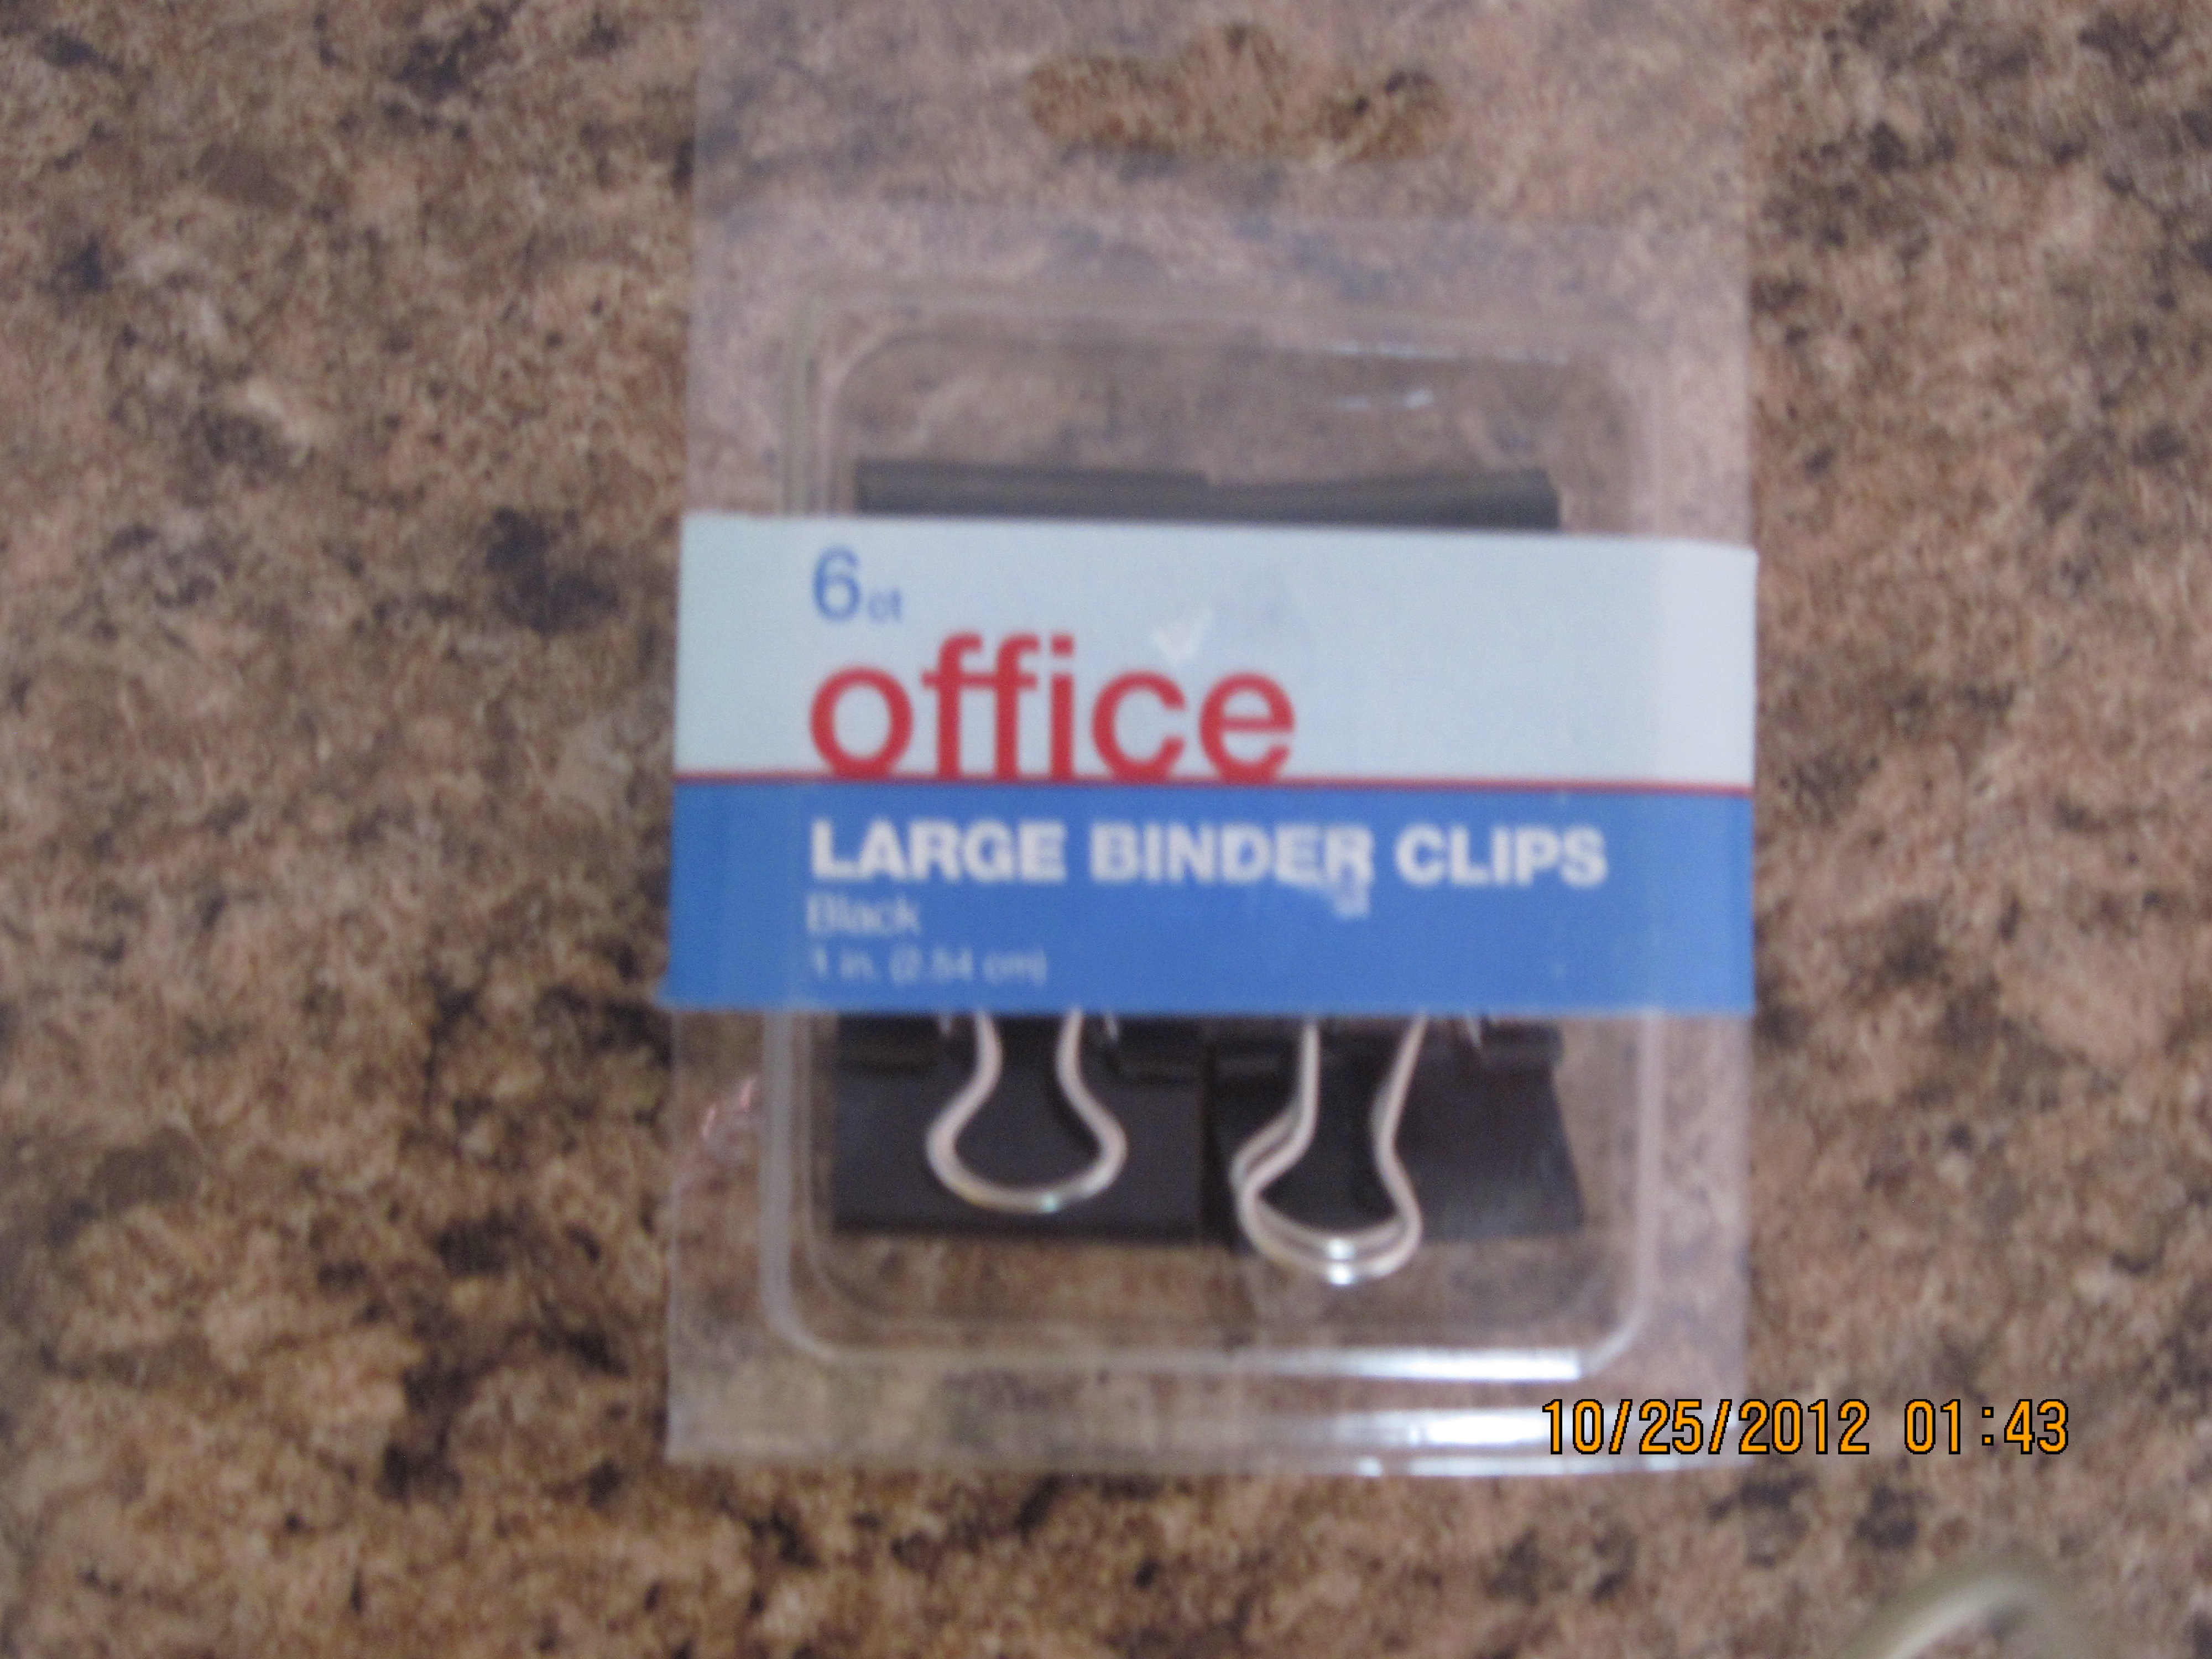 6 ct Office Large Binder Clips